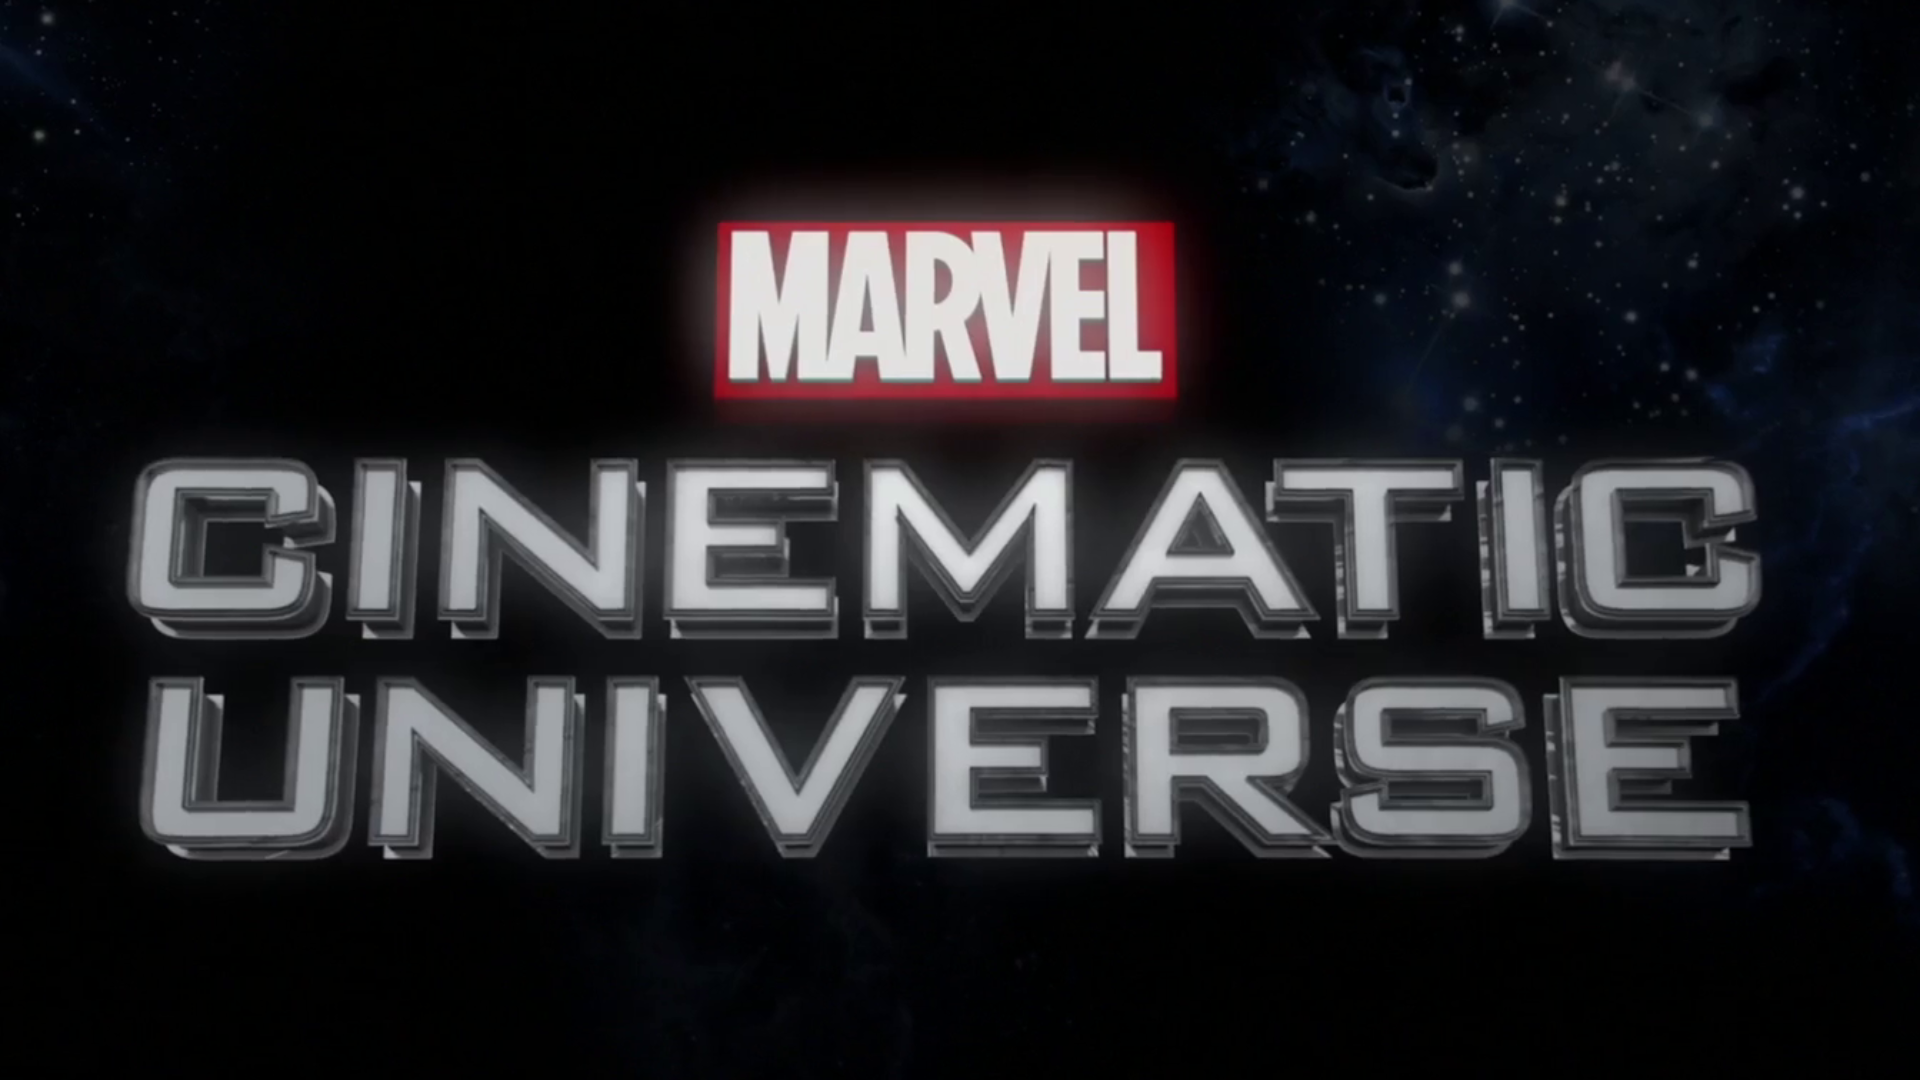 The Marvel Cinematic Universe (MCU) is an American media franchise and shared universe centered on a series of superhero films produced by Marvel Studios. The films are based on characters that appear in American comic books published by Marvel Comics. The franchise also includes television series, short films, digital series, and literature. The shared universe, much like the original Marvel Universe in comic books, was established by crossing over common plot elements, settings, cast, and characters.Wikipedia